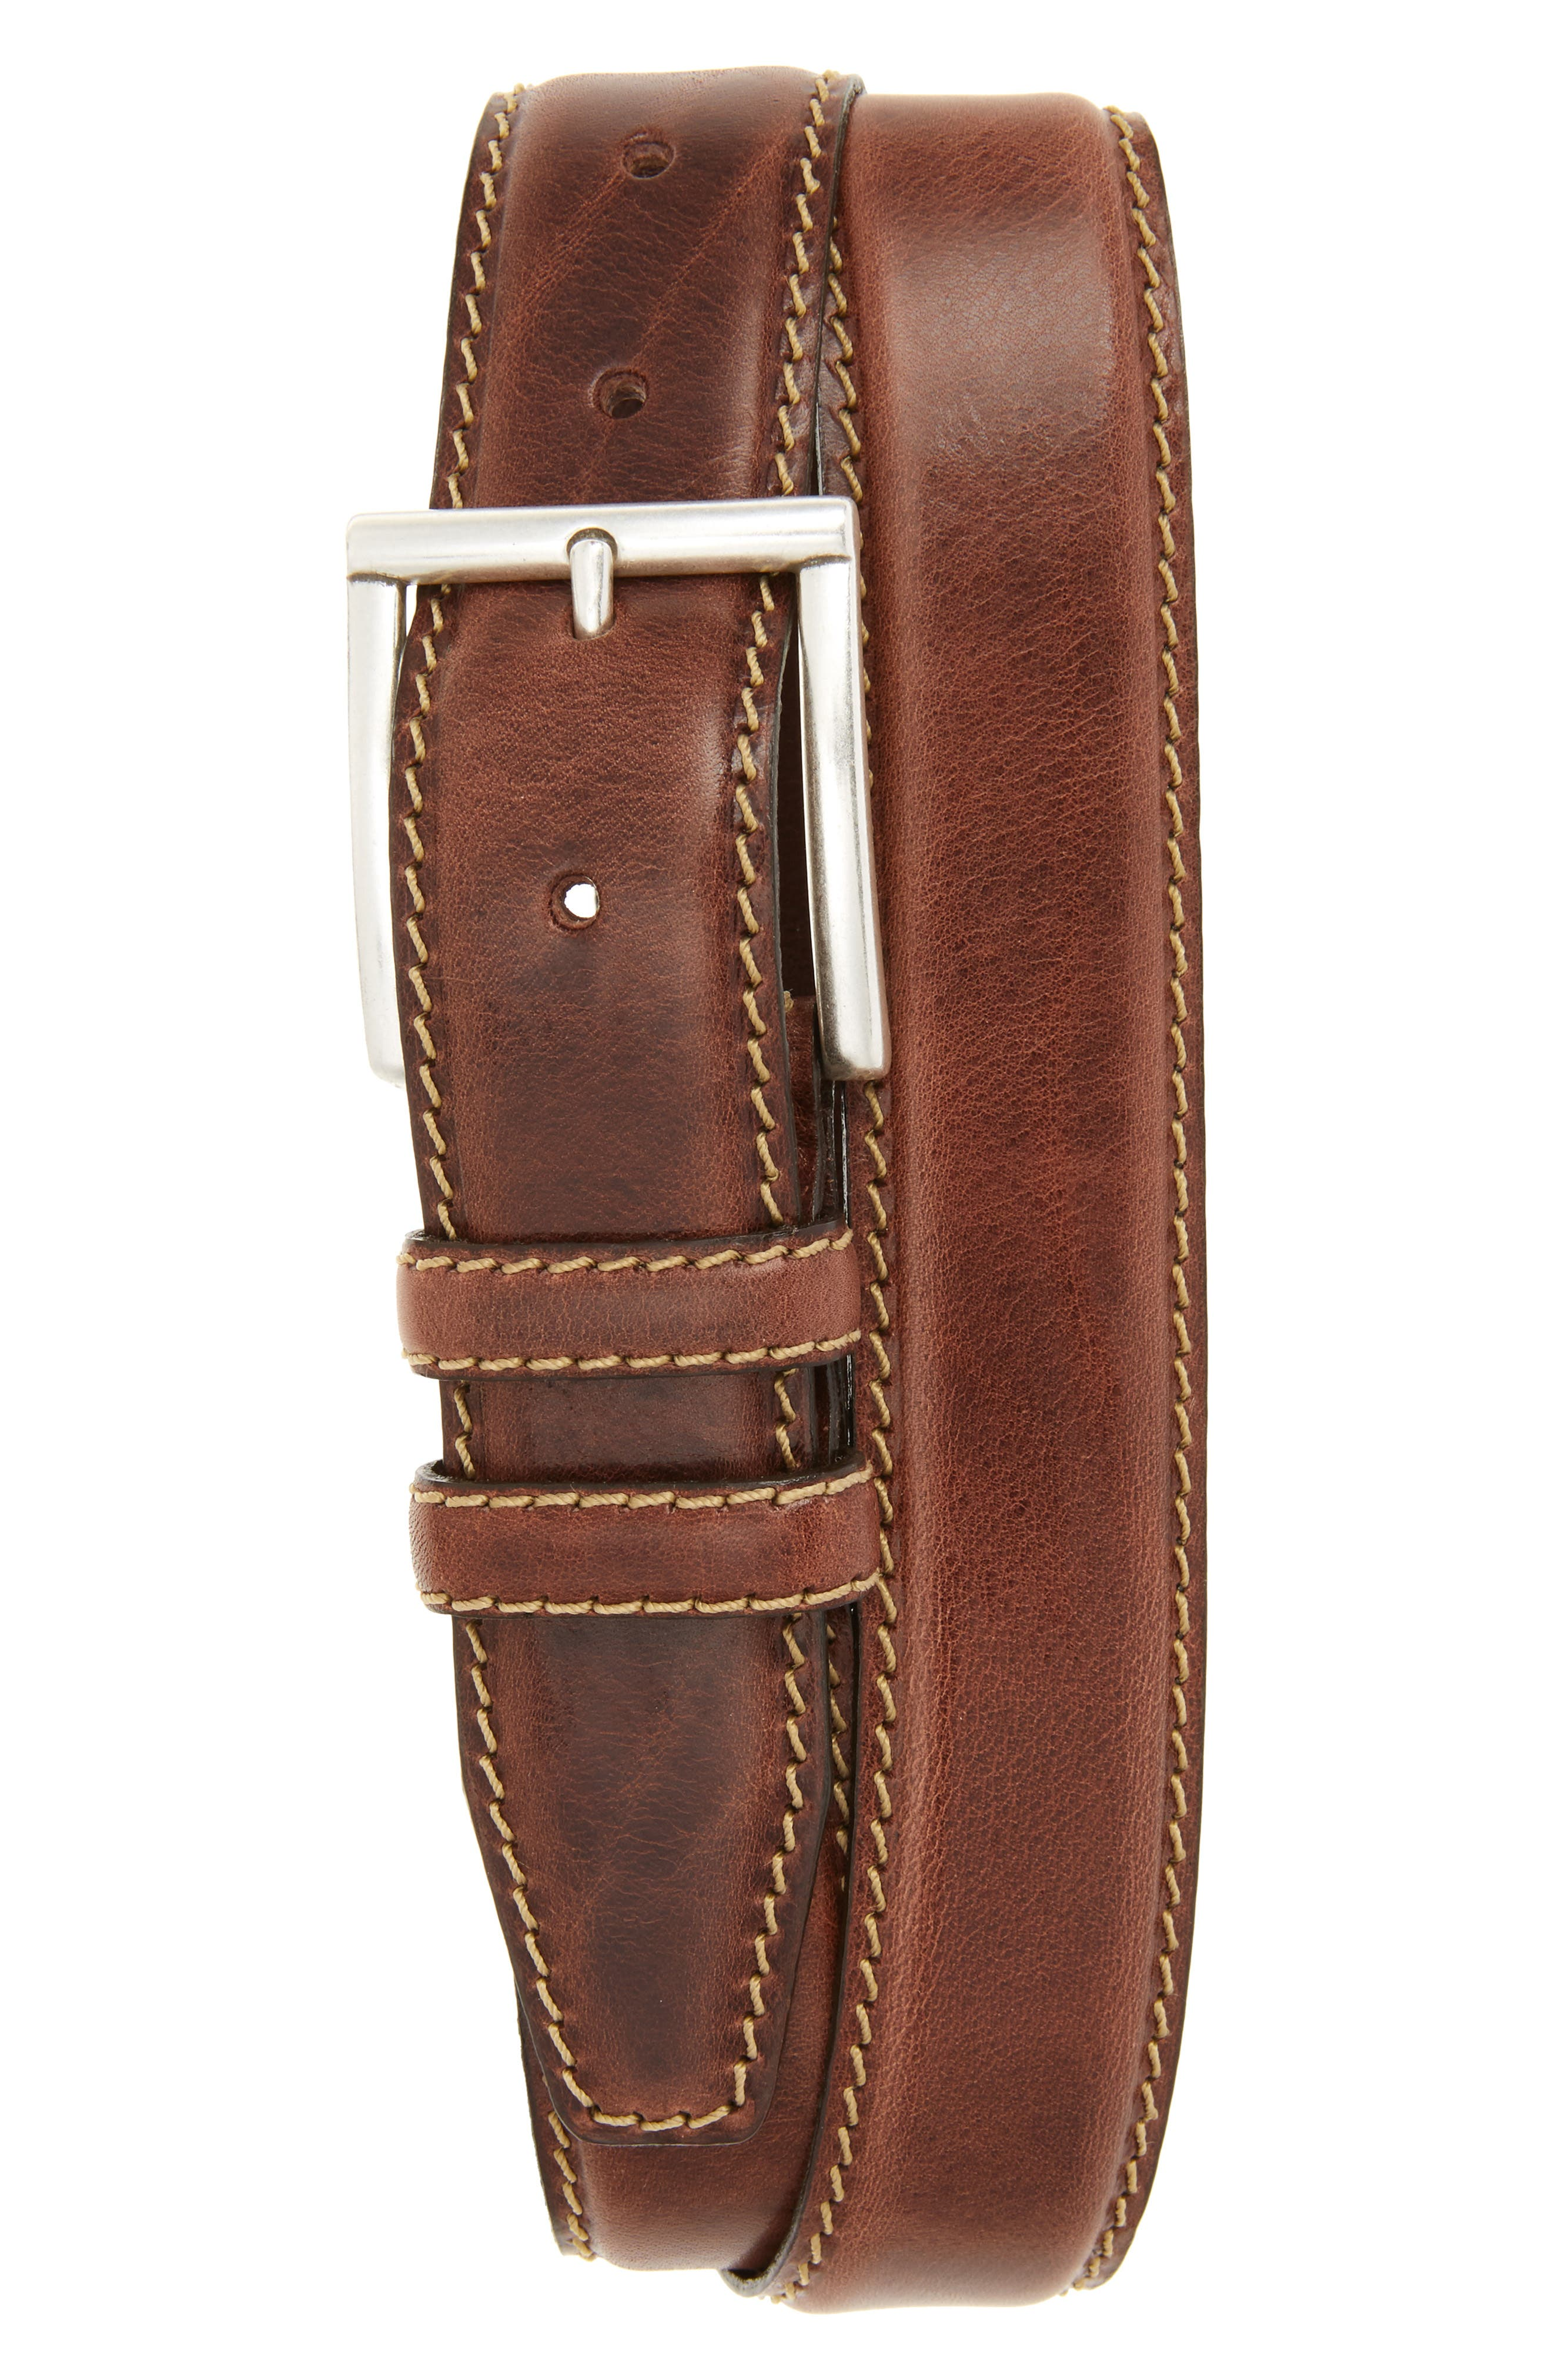 Sterling Ave Leather Belt,                             Main thumbnail 1, color,                             200